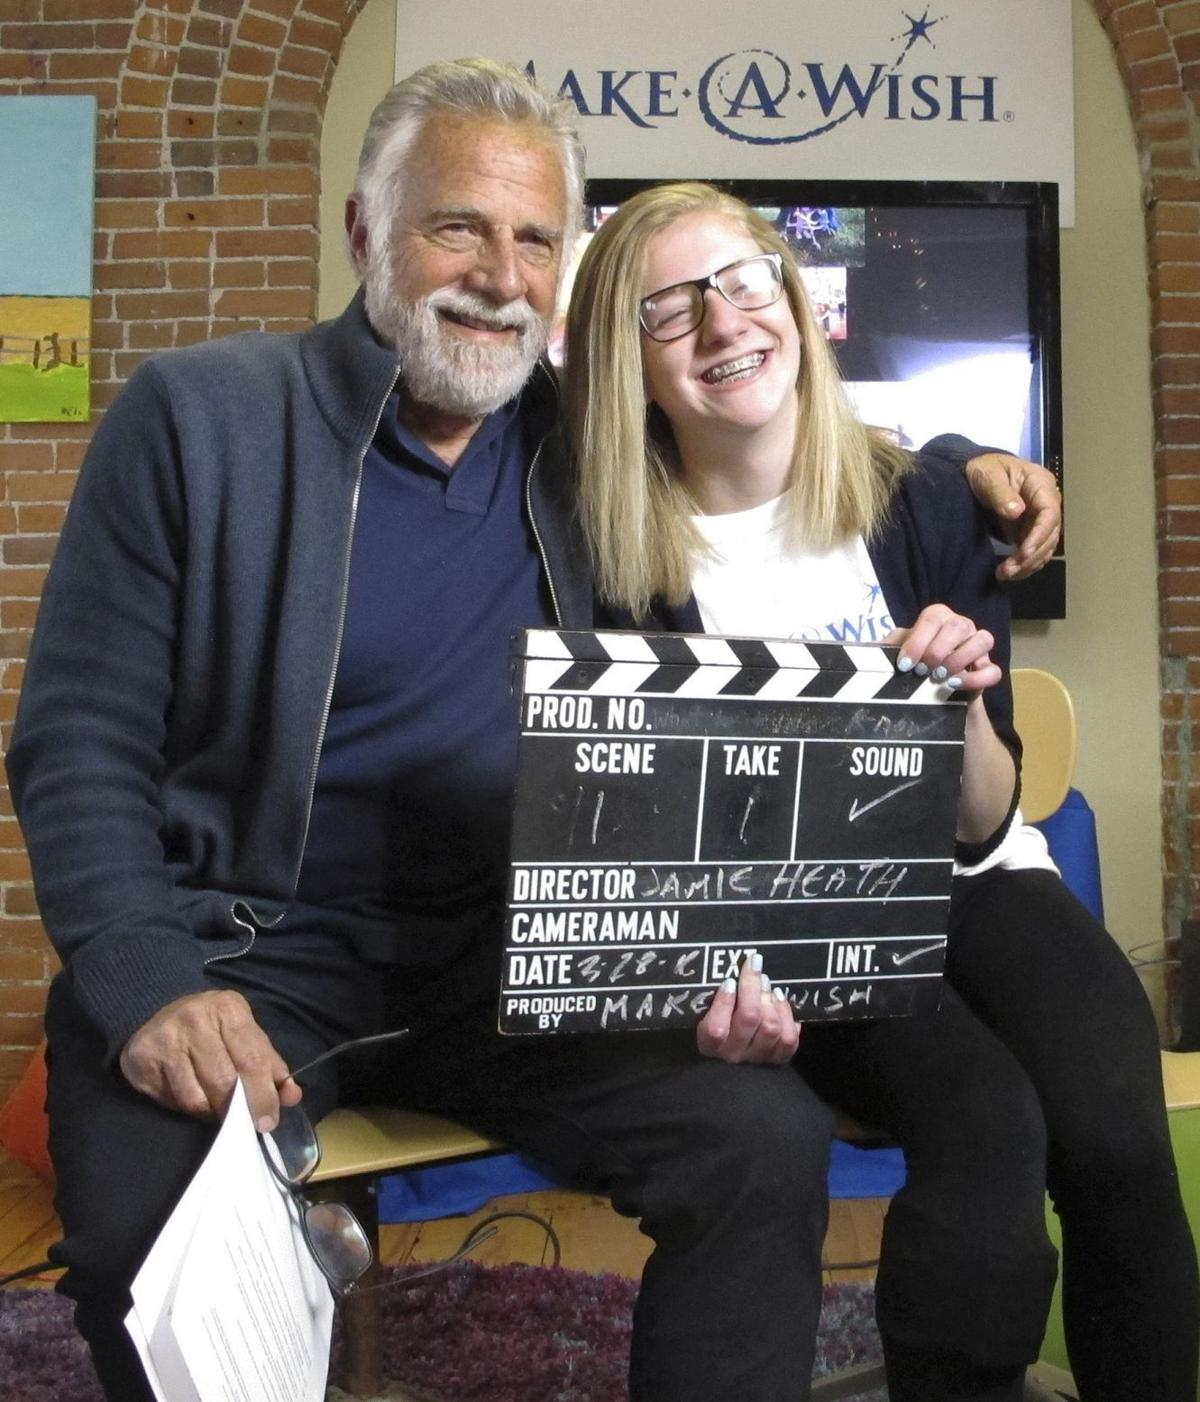 'Most Interesting Man' helps Make-a-Wish in Vermont